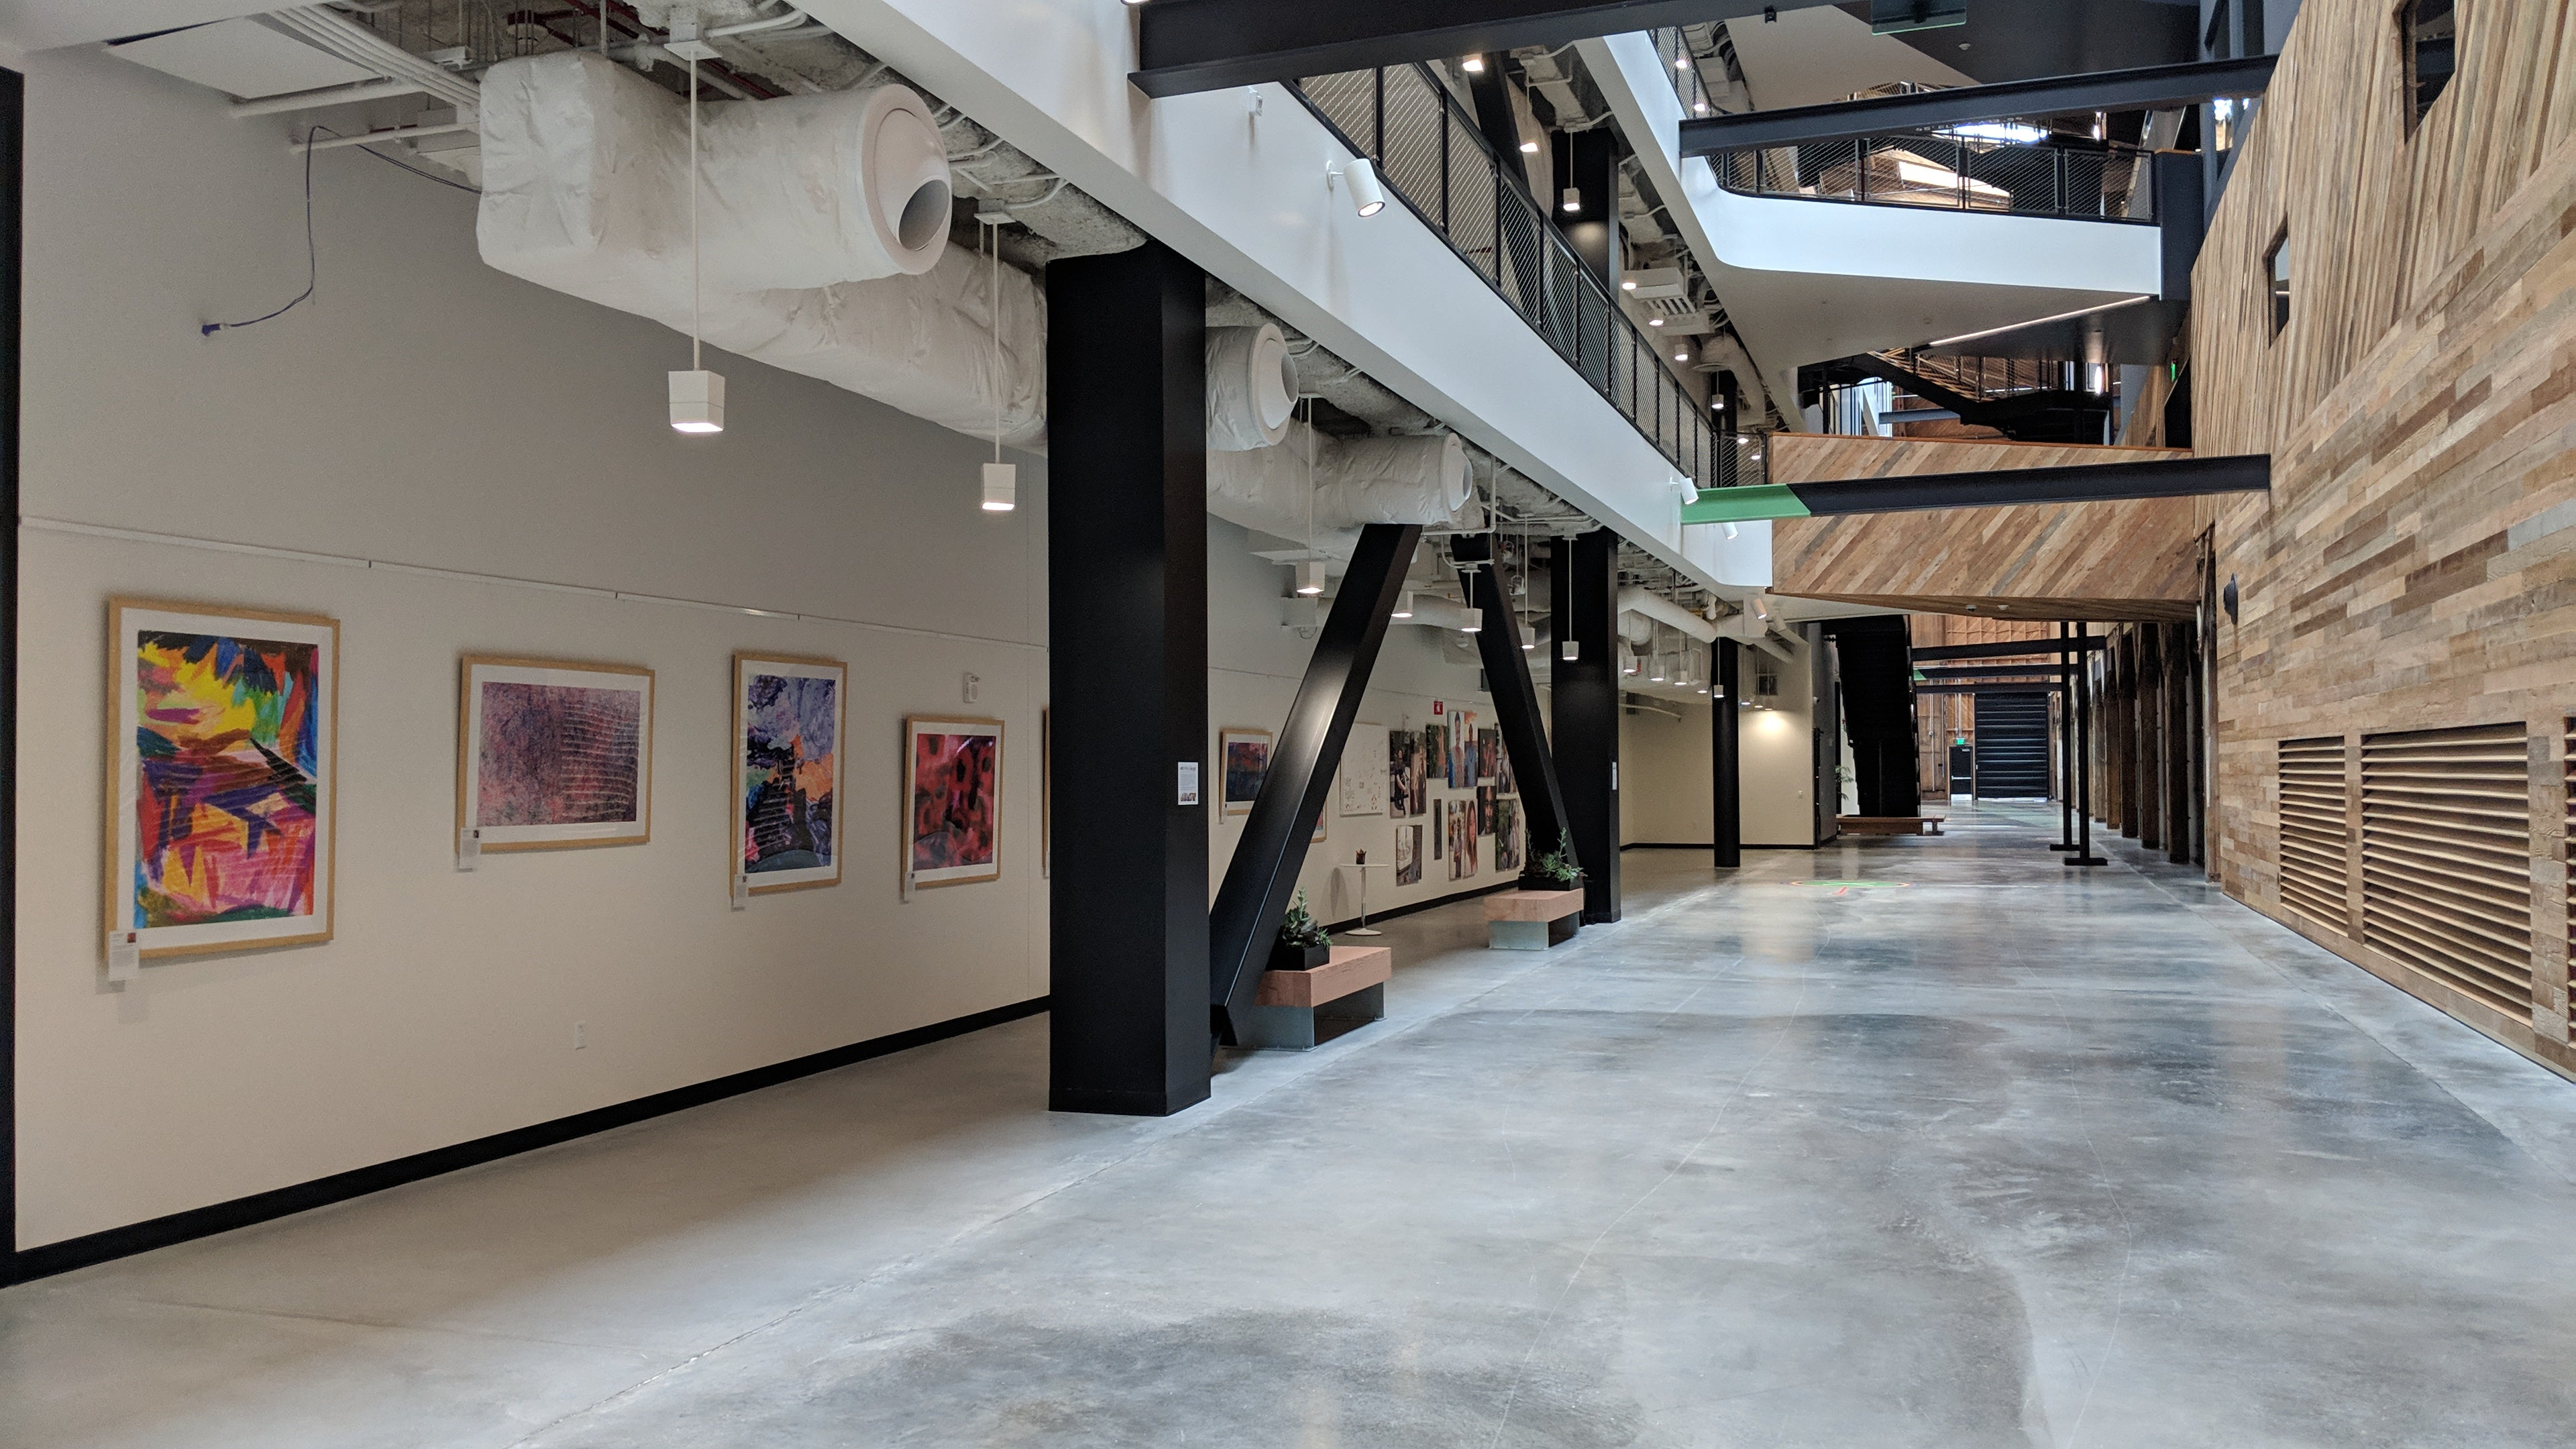 ArtLifting's rotation Program helps us keep our space fresh, relevant, and engaging.  Googlers are exposed to a variety of artists and artworks over the year which helps inspire new creativity and inclusivity. </p>-Heith Rogers, Facilities Manager at Google LA